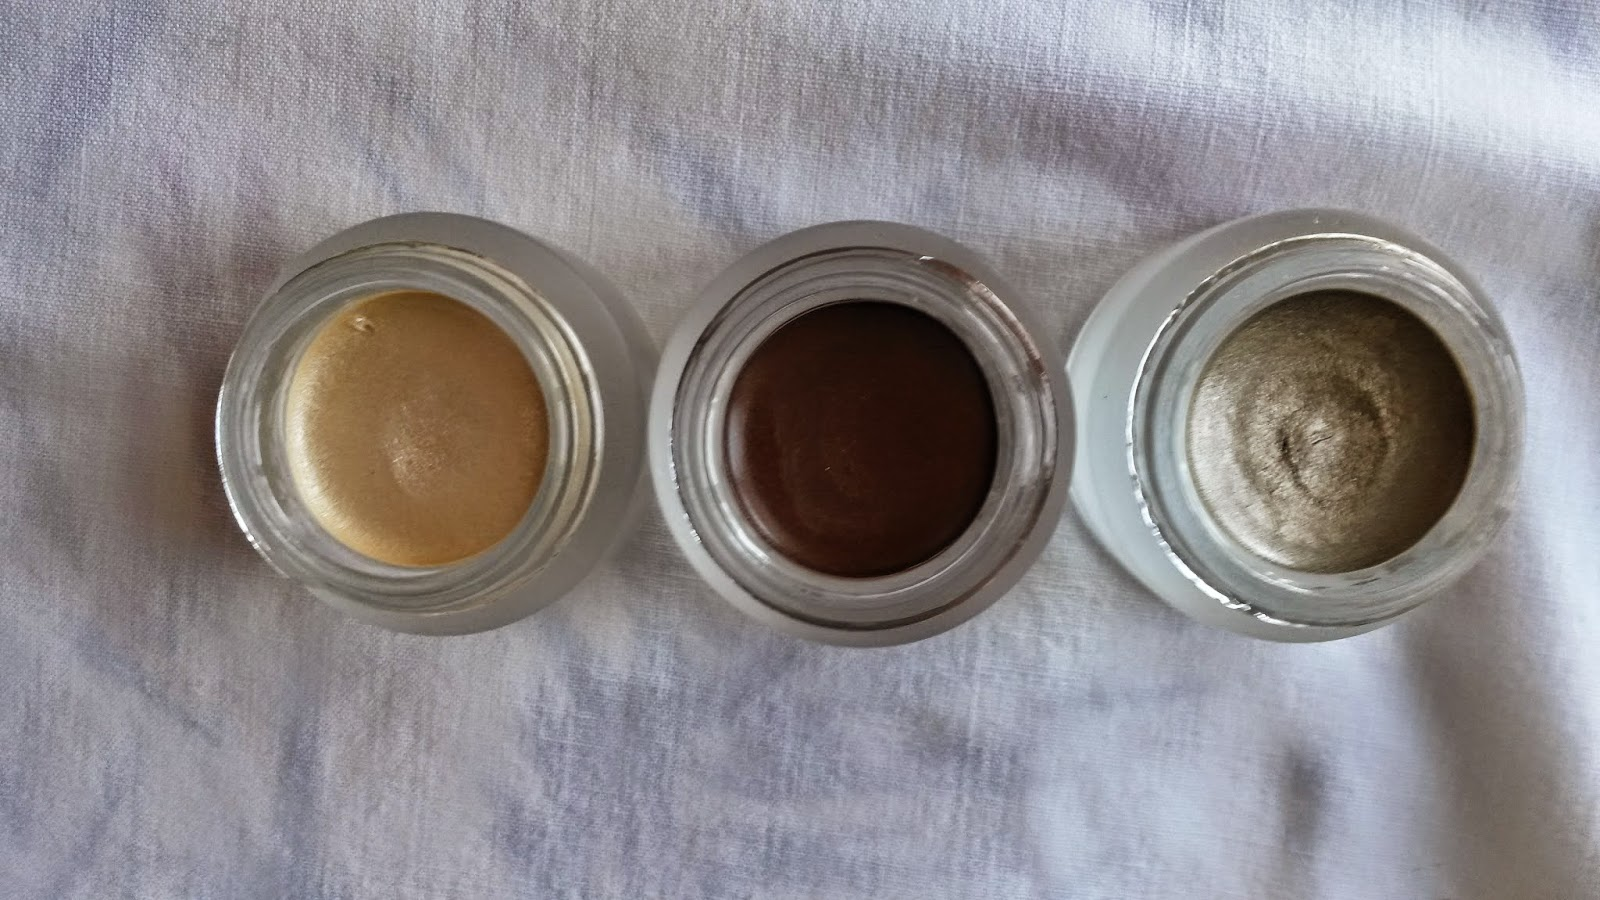 3CE - GLAM CREAM SHADOW in SPOTLIGHT, GOLDEN NUDE and GLAMOROUS